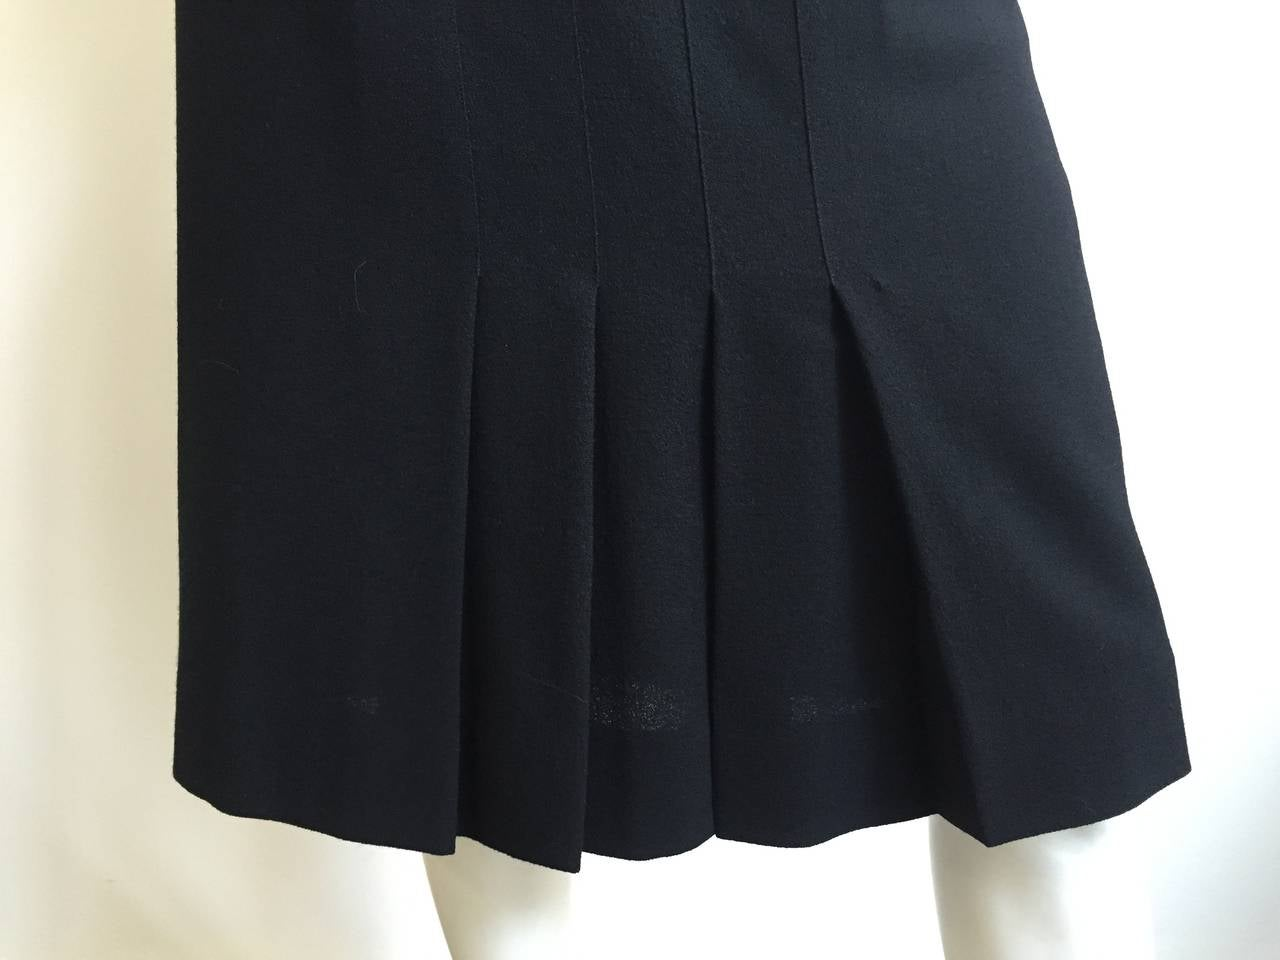 Chanel 80s Black Pleated Skirt Size 10. 8